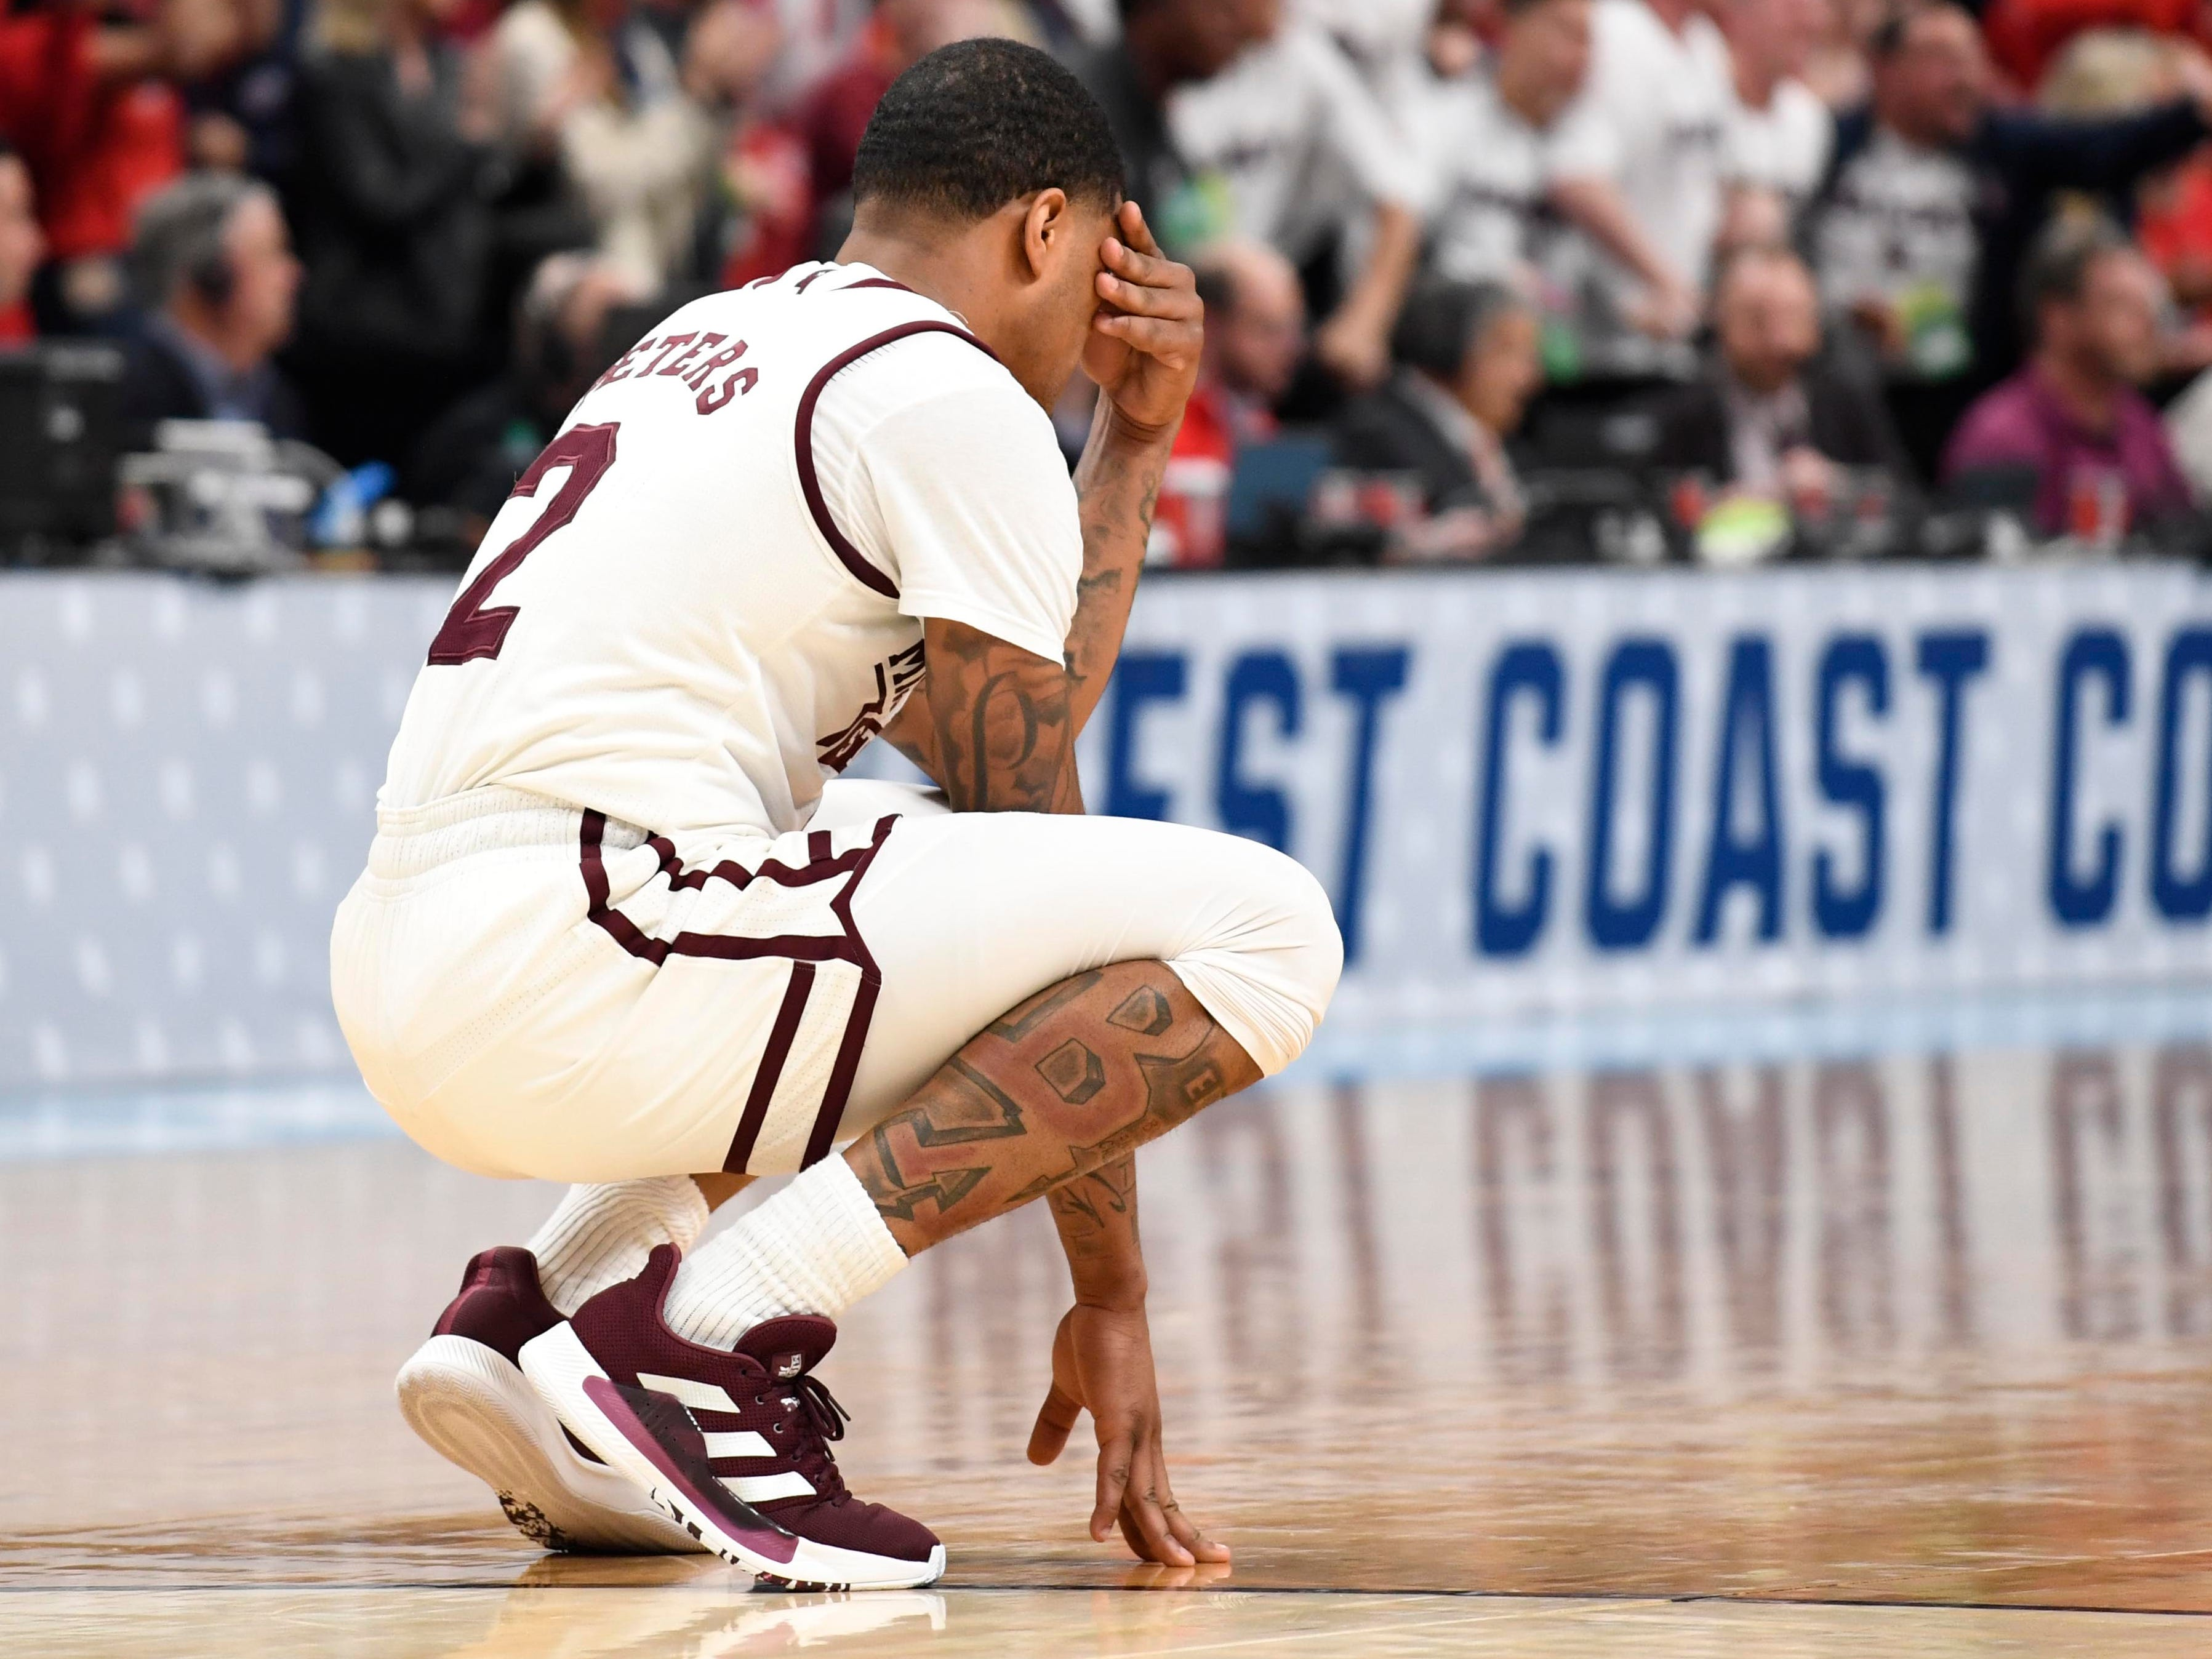 First round: No. 5 Mississippi State loses to No. 12 Liberty, 80-76.